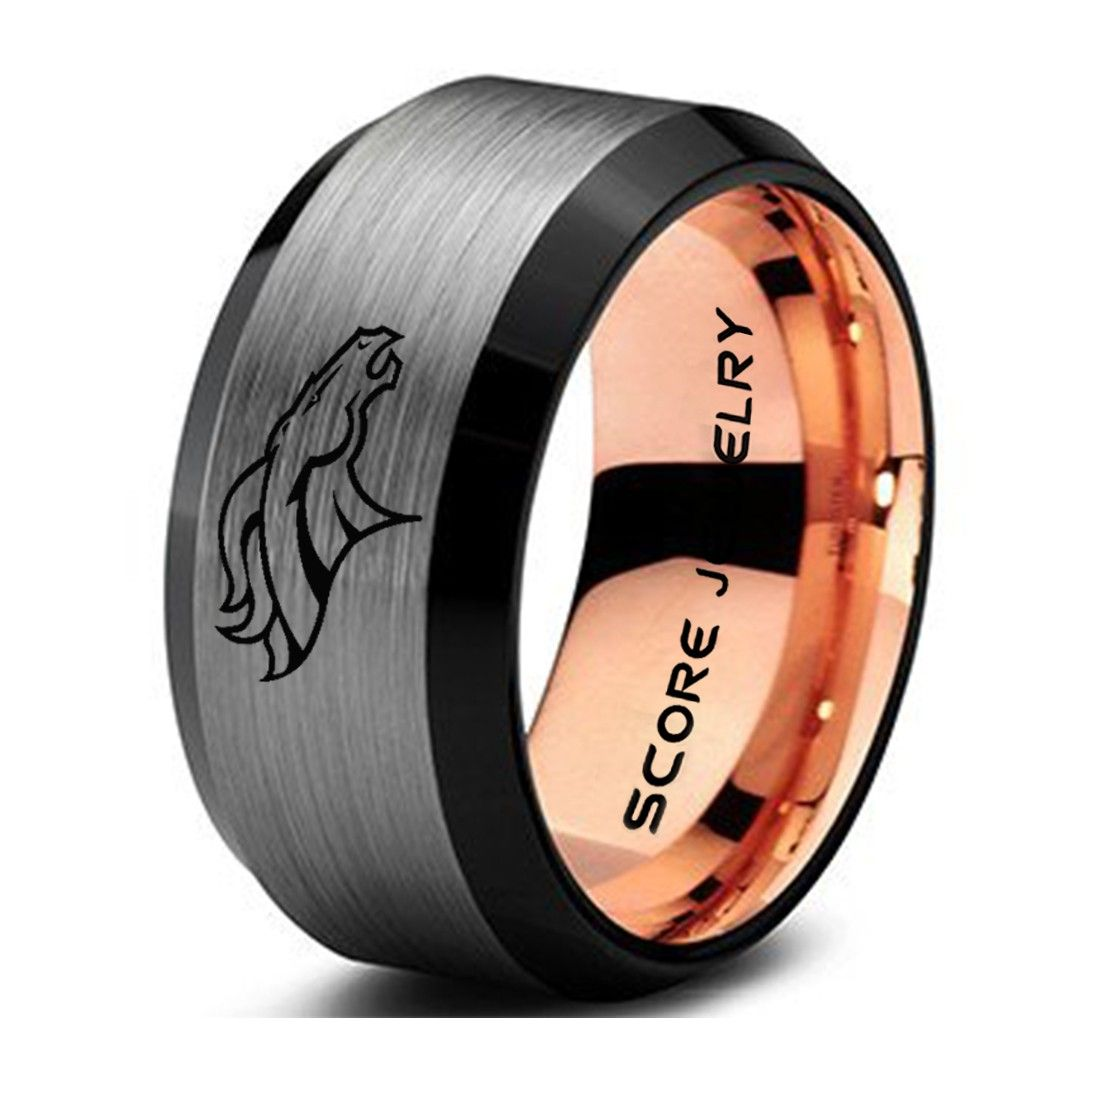 10mm Broncos Ring Broncos Jewelry Black Tungsten Band With Beveled Edge Broncos Logo Ring Black Tungsten Ring Black Tungsten Rings Black Tungsten Band Tungsten Wedding Bands